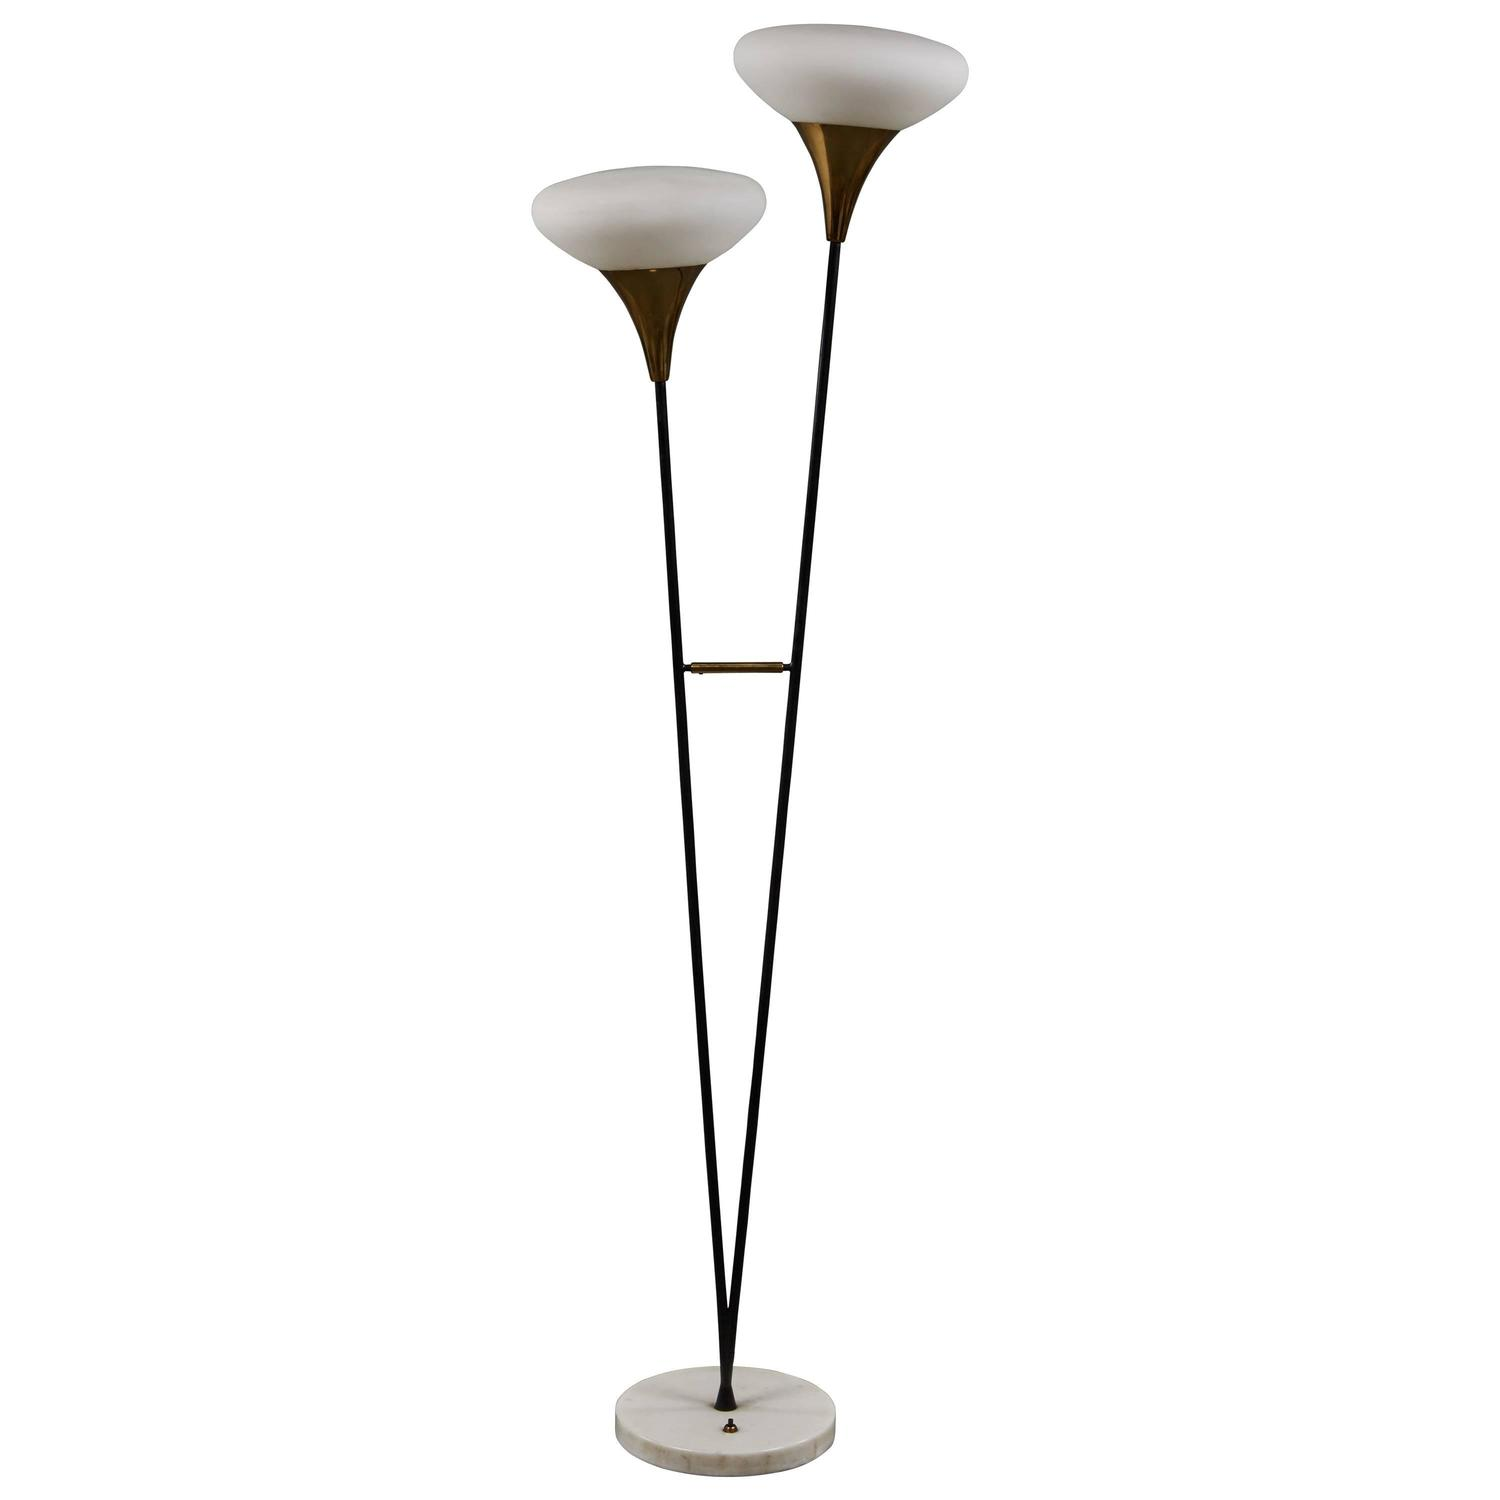 unusual stilnovo floor lamp for sale at 1stdibs. Black Bedroom Furniture Sets. Home Design Ideas